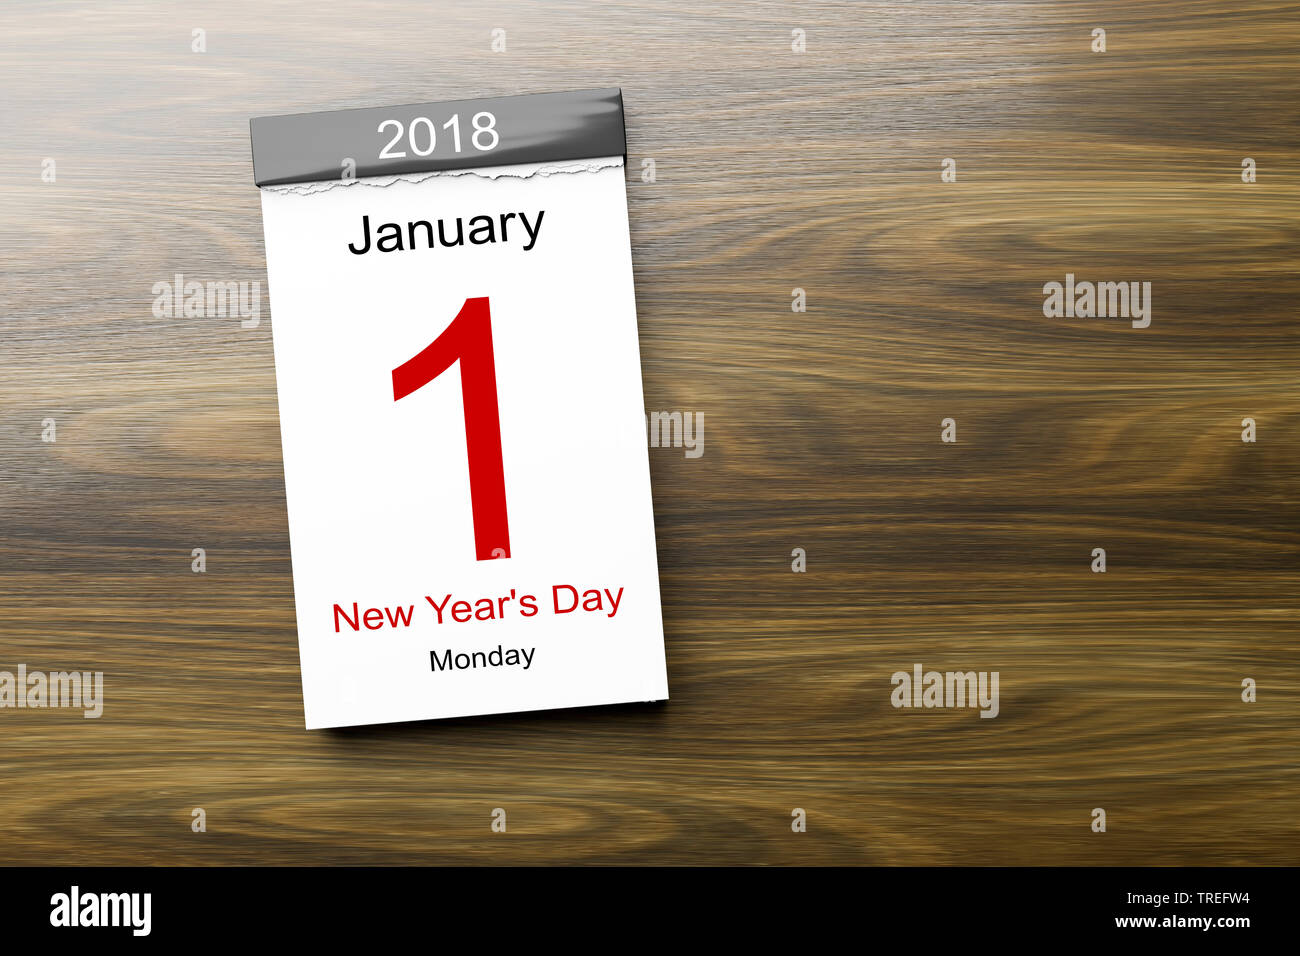 Abreisskalender mit Aufschrift JANUARY 1st 2018 - NEW YEAR'S DAY (1 Januar 2018 Neujahrstag) | Tear-off calendar lettering JANUARY 1st 2018 - NEW YEAR - Stock Image